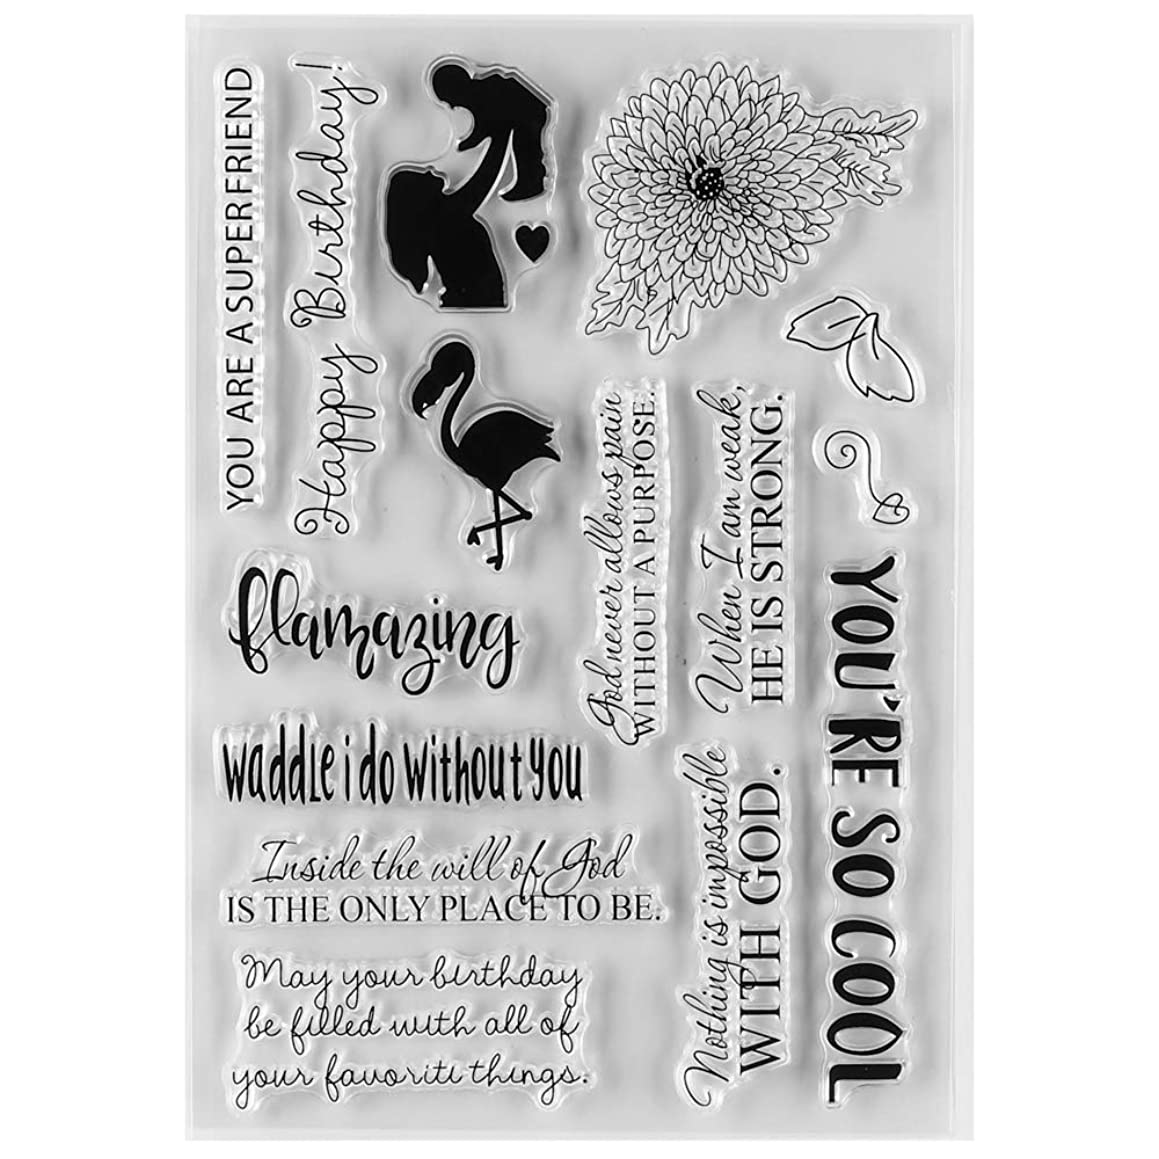 MaGuo Happy Birthday Clear Rubber Stamps Baby for DIY Scrapbooking Paper Craft or Card Making Decoration